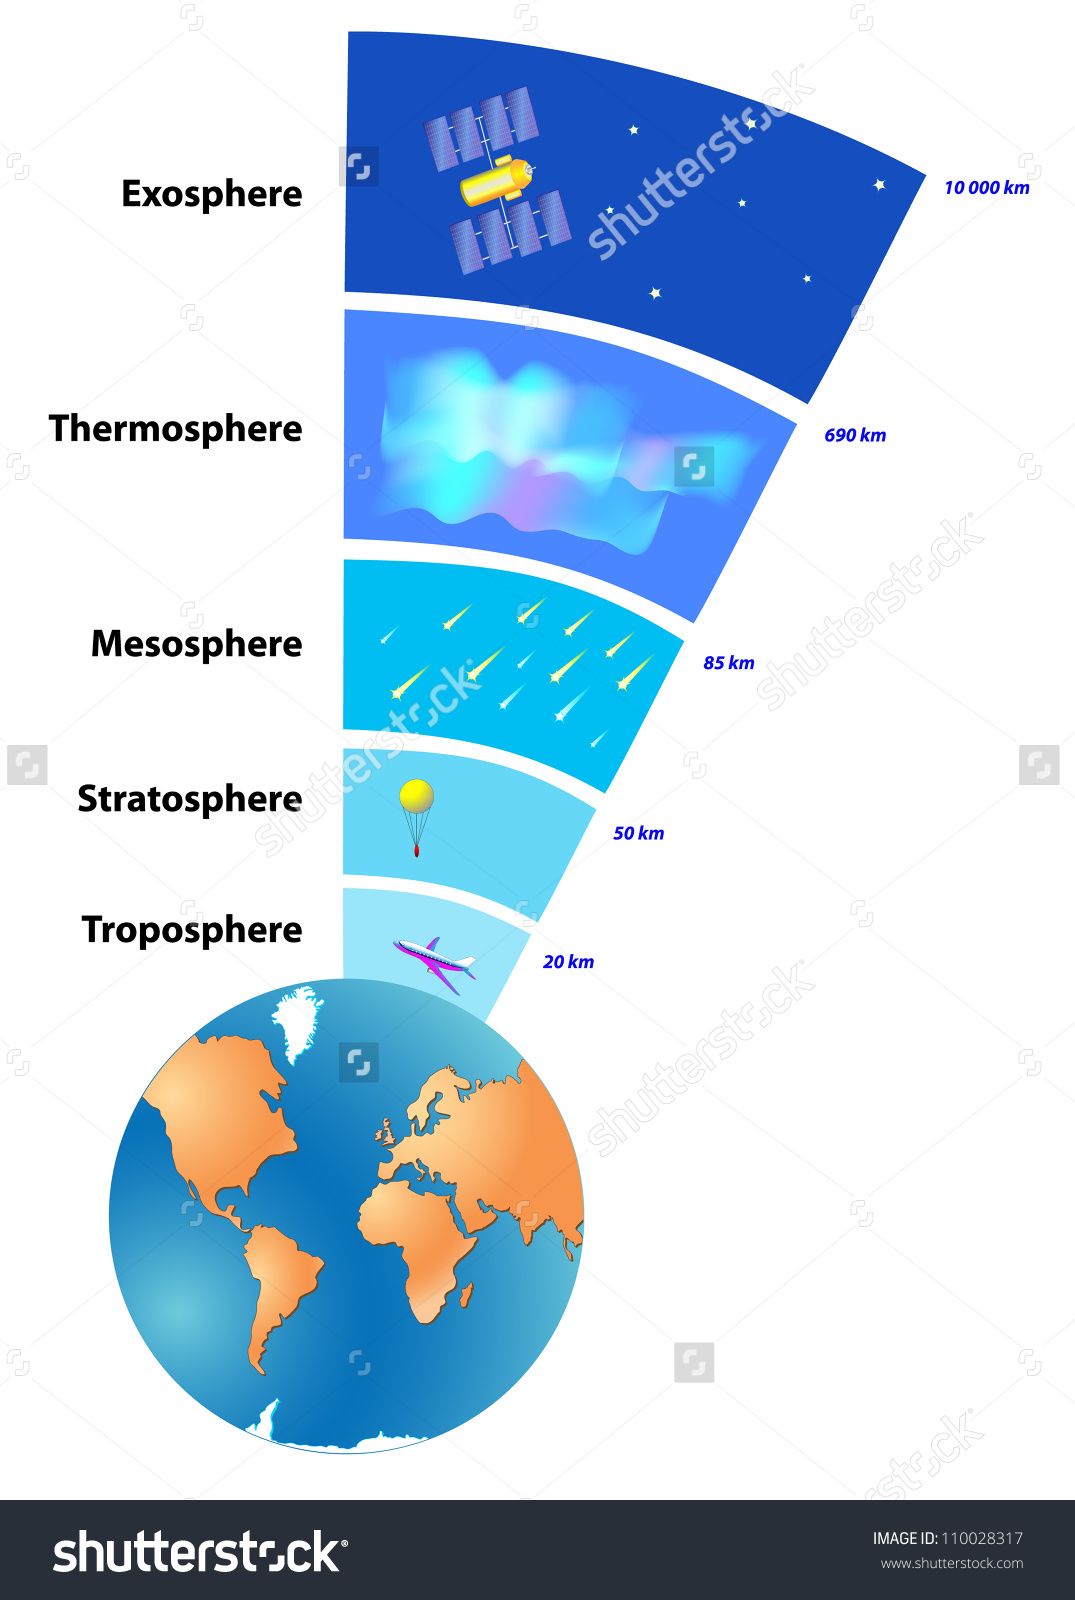 Earth S Atmosphere Clipart